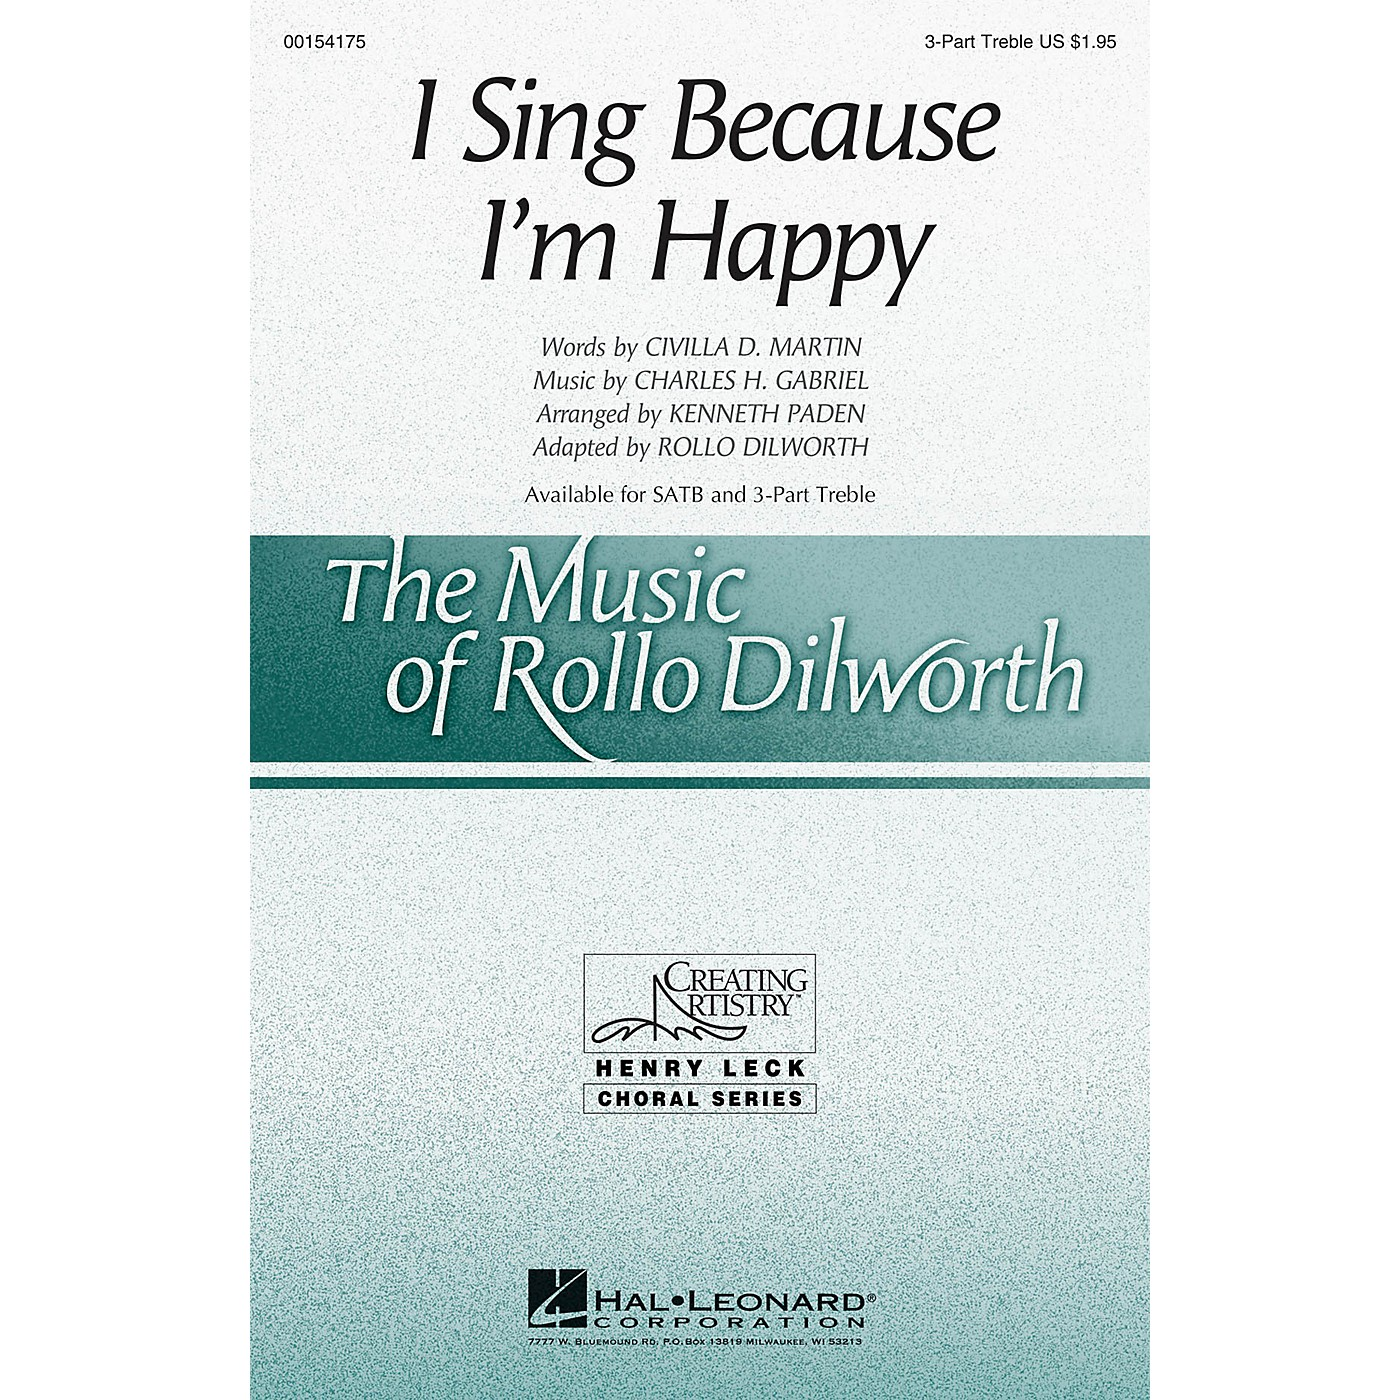 Hal Leonard I Sing Because I'm Happy 3 Part Treble arranged by Rollo Dilworth thumbnail